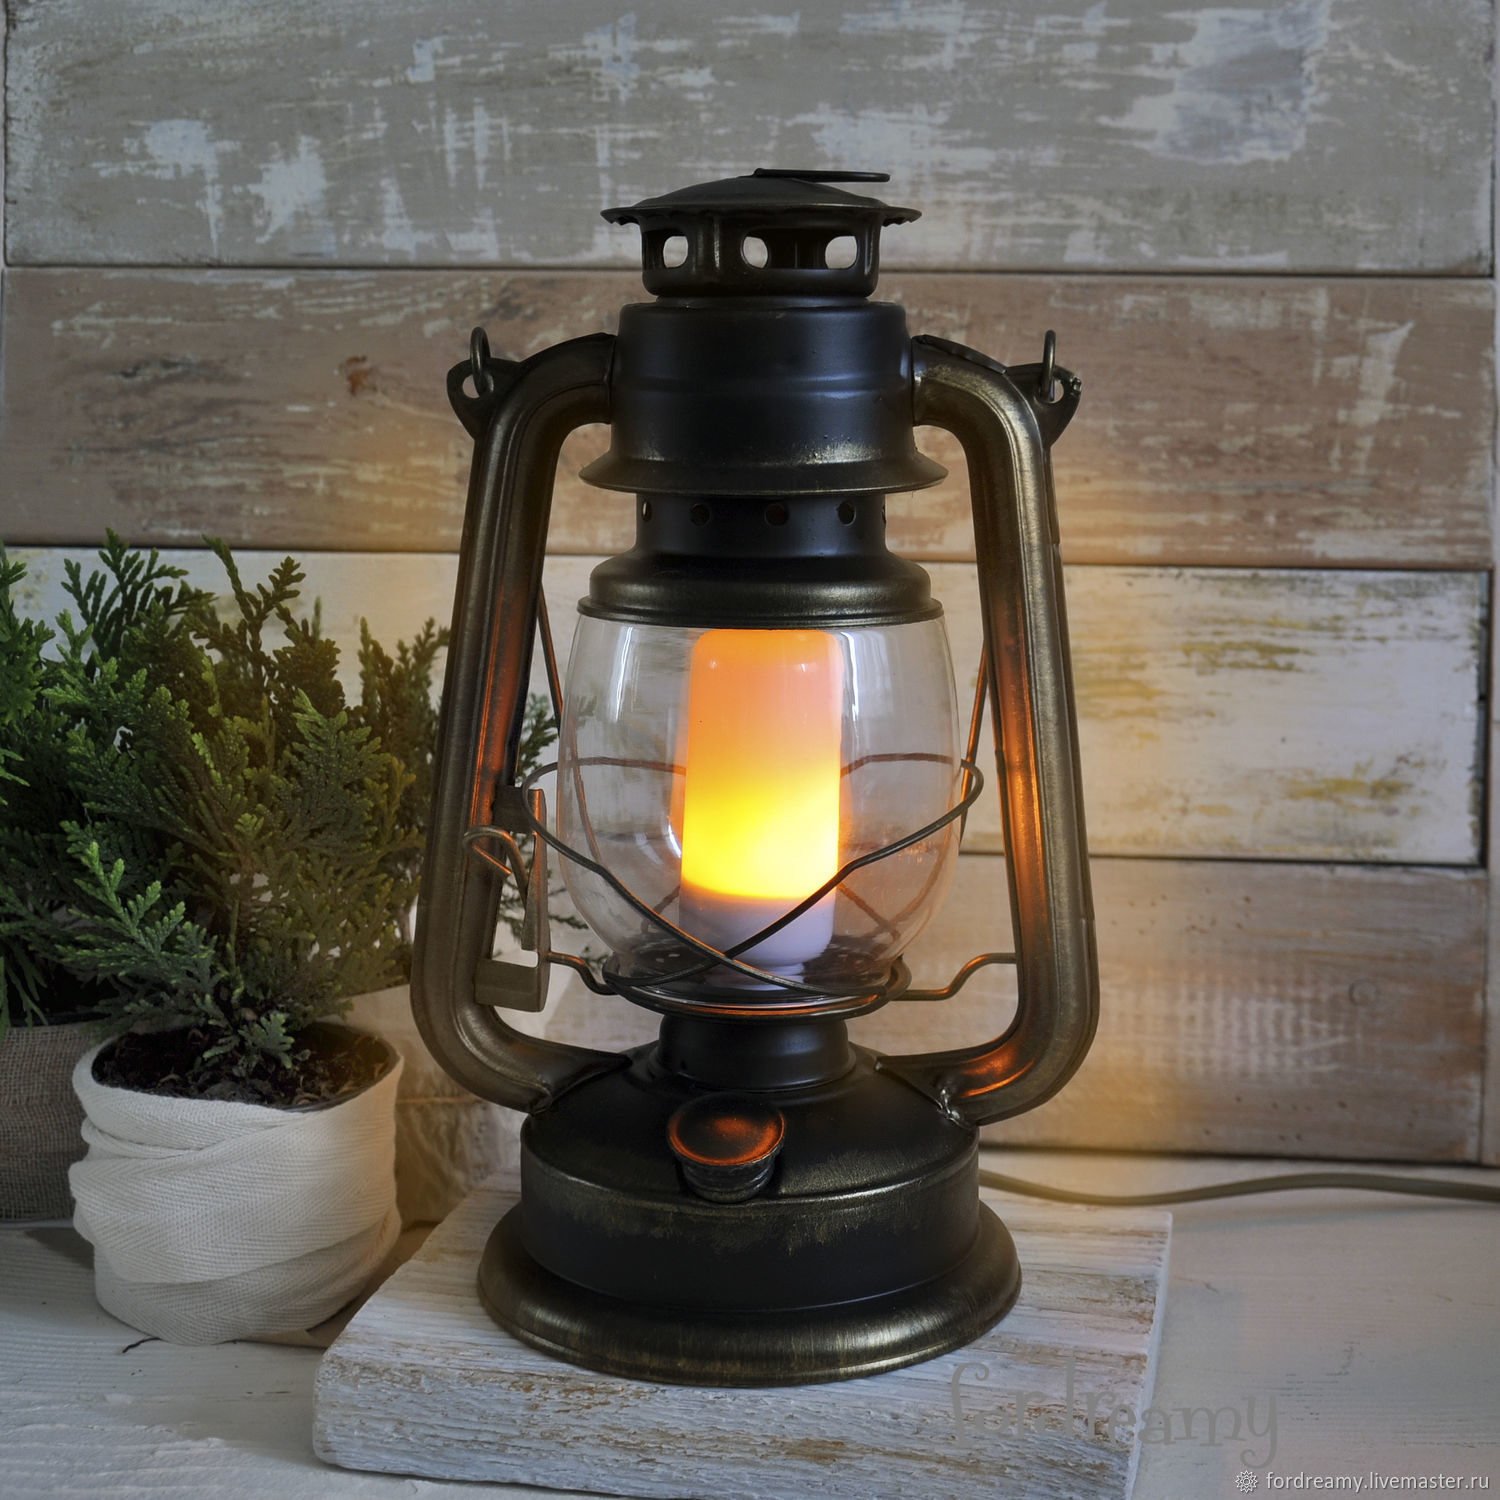 Modern Kerosene Lamp Retro Lamp Kerosene Lamp Electric Shop Online On Livemaster With Shipping